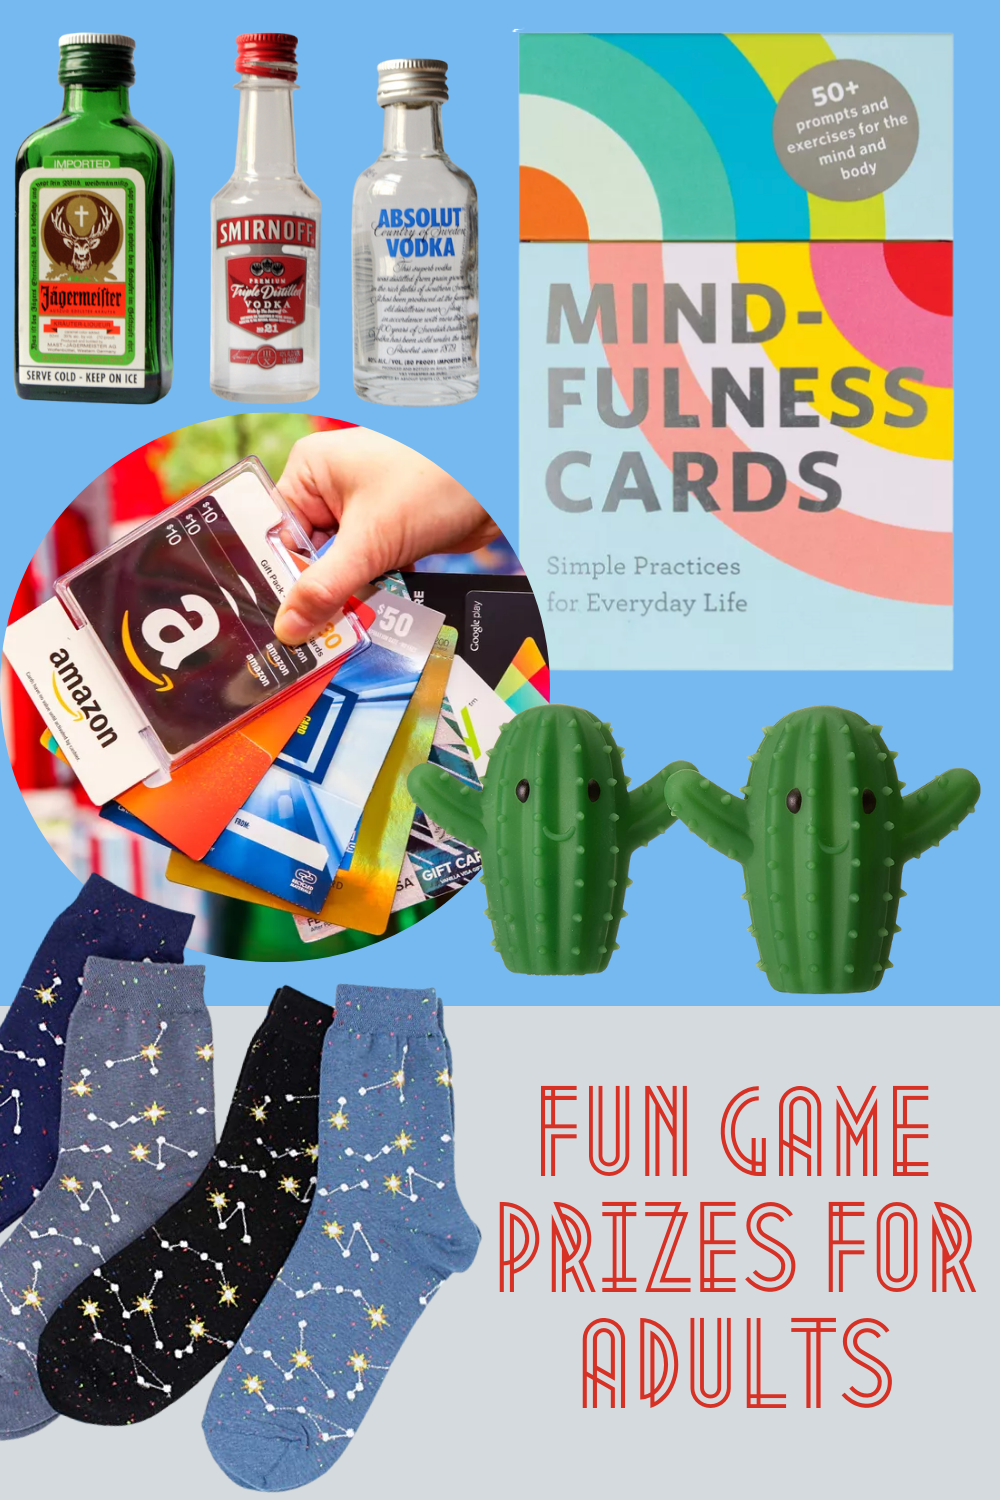 Prizes for Games for Adults